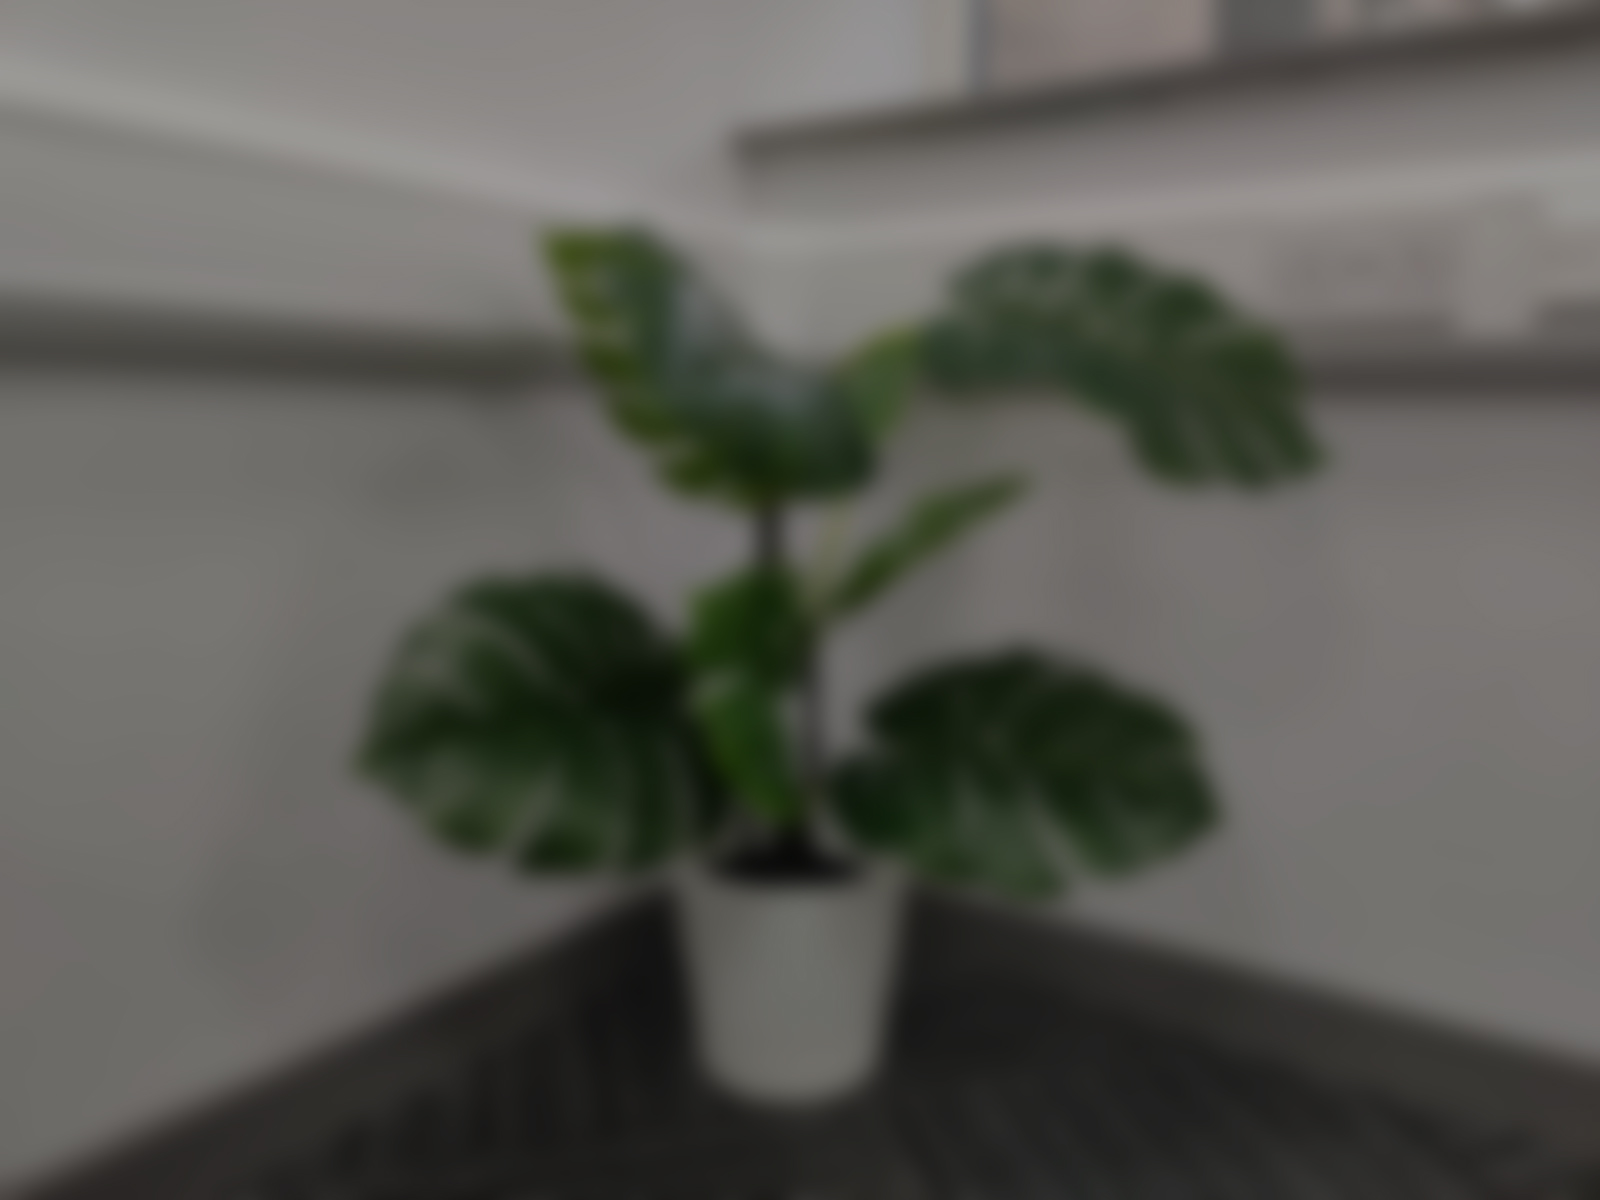 office plant blurred